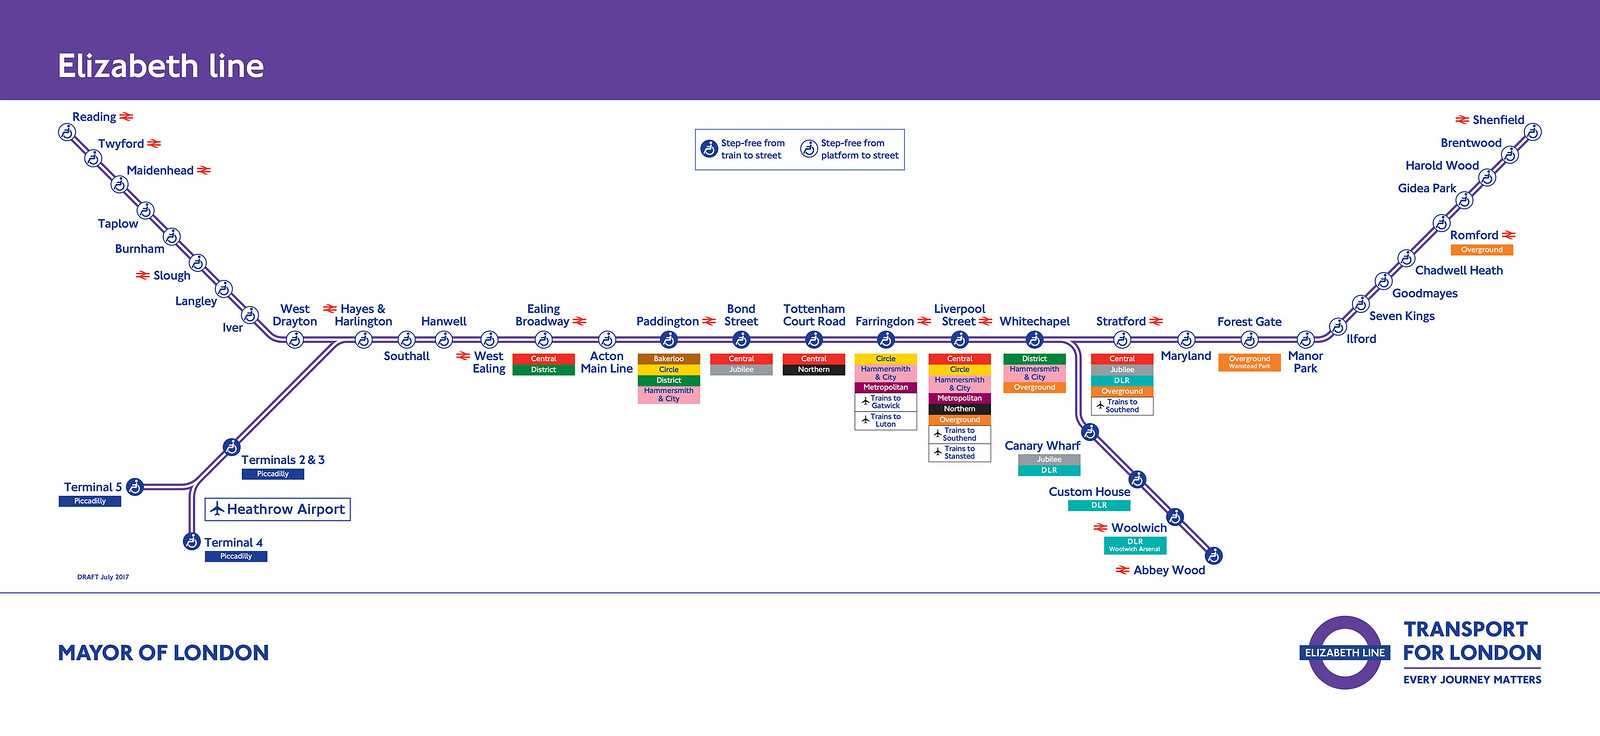 TfL image - Elizabeth line services from December 2019